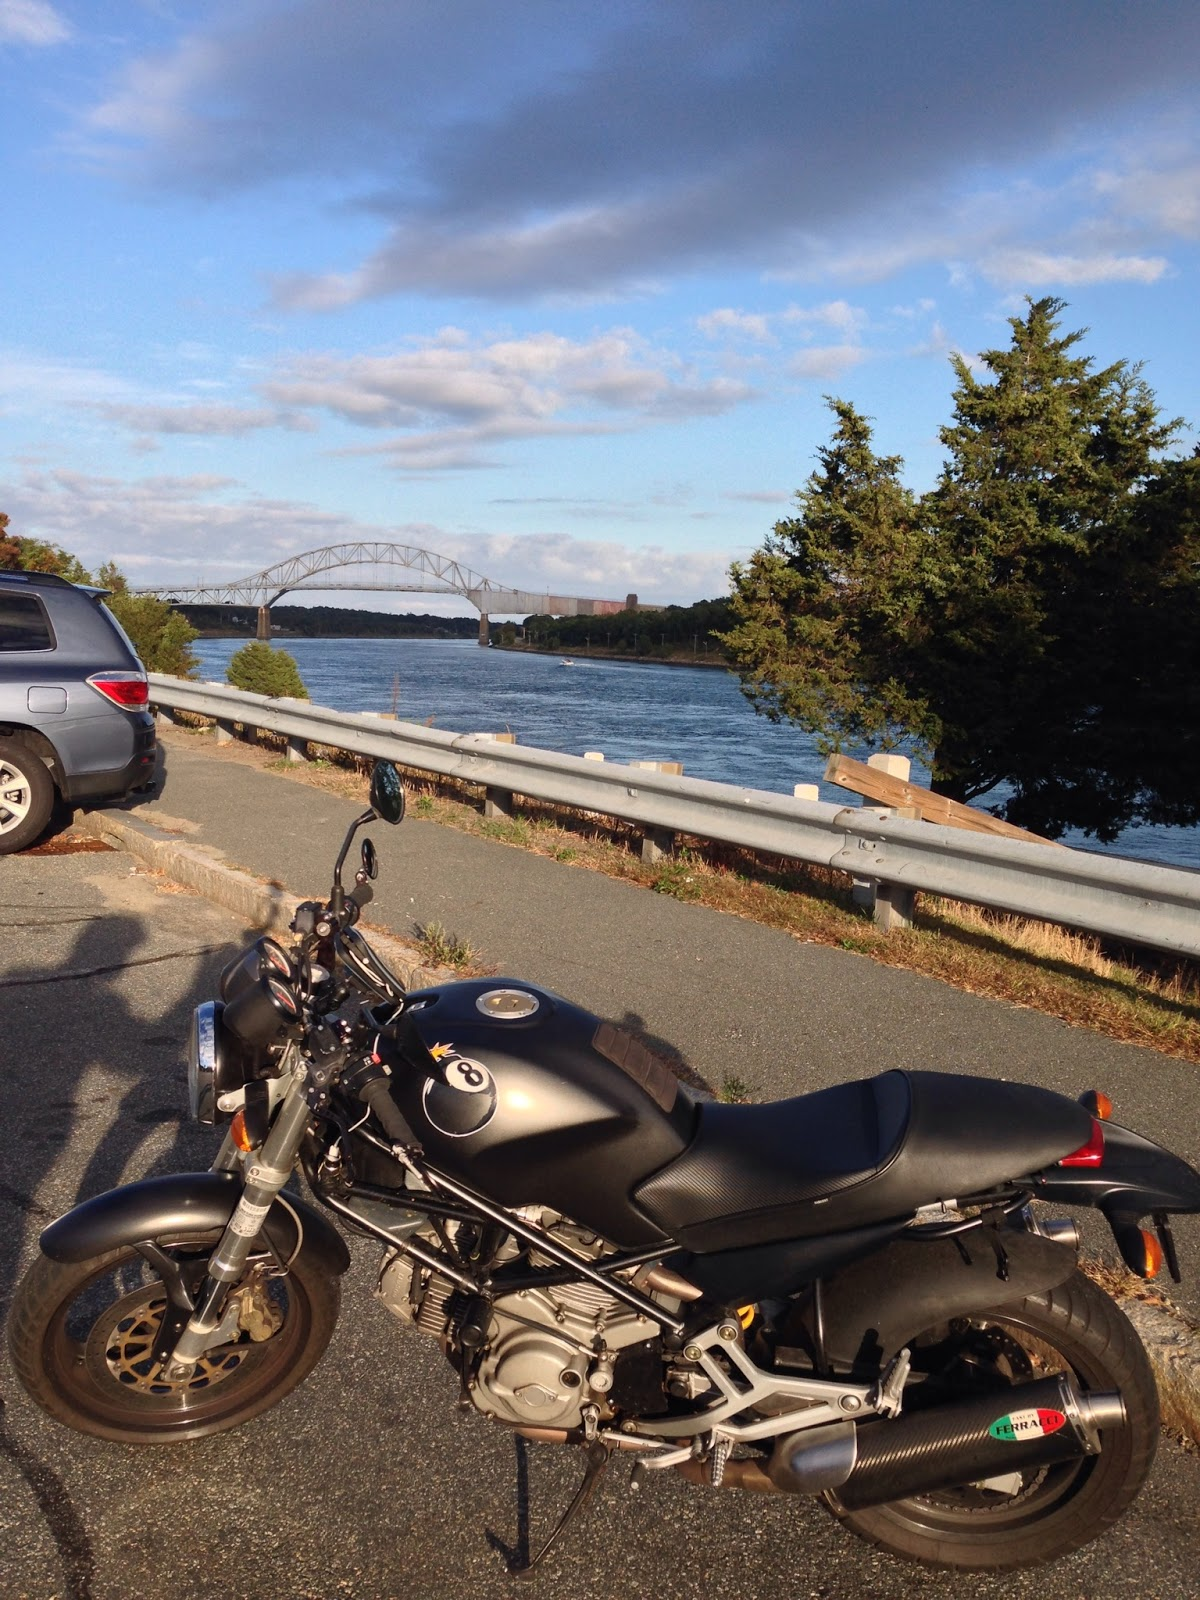 Tigho NYDucati goes Biking to Boston and Cape Cod and Chatham, Massachusetts Cape Cod Canal